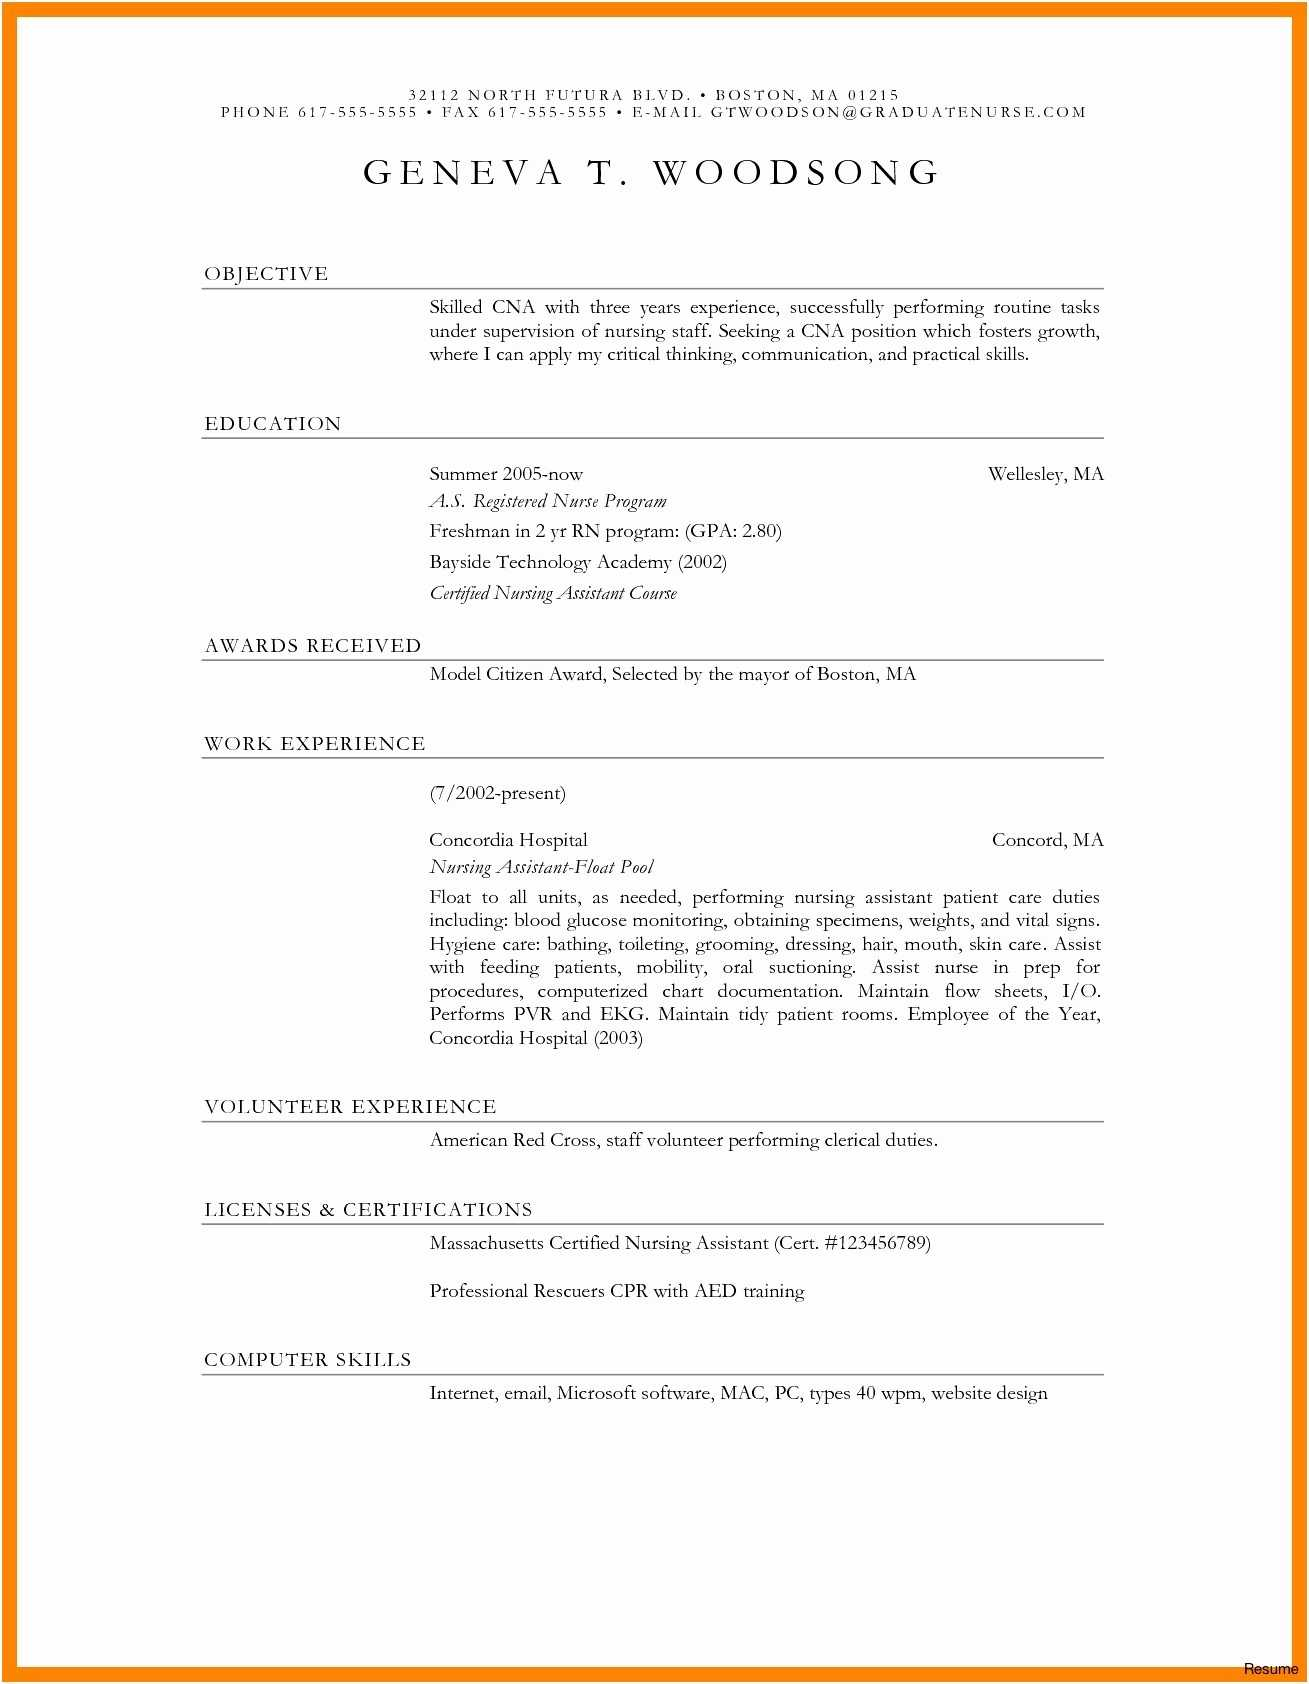 Fill In the Blank Resume Worksheet Also References Resume format Beautiful Fresh Blank Resume format